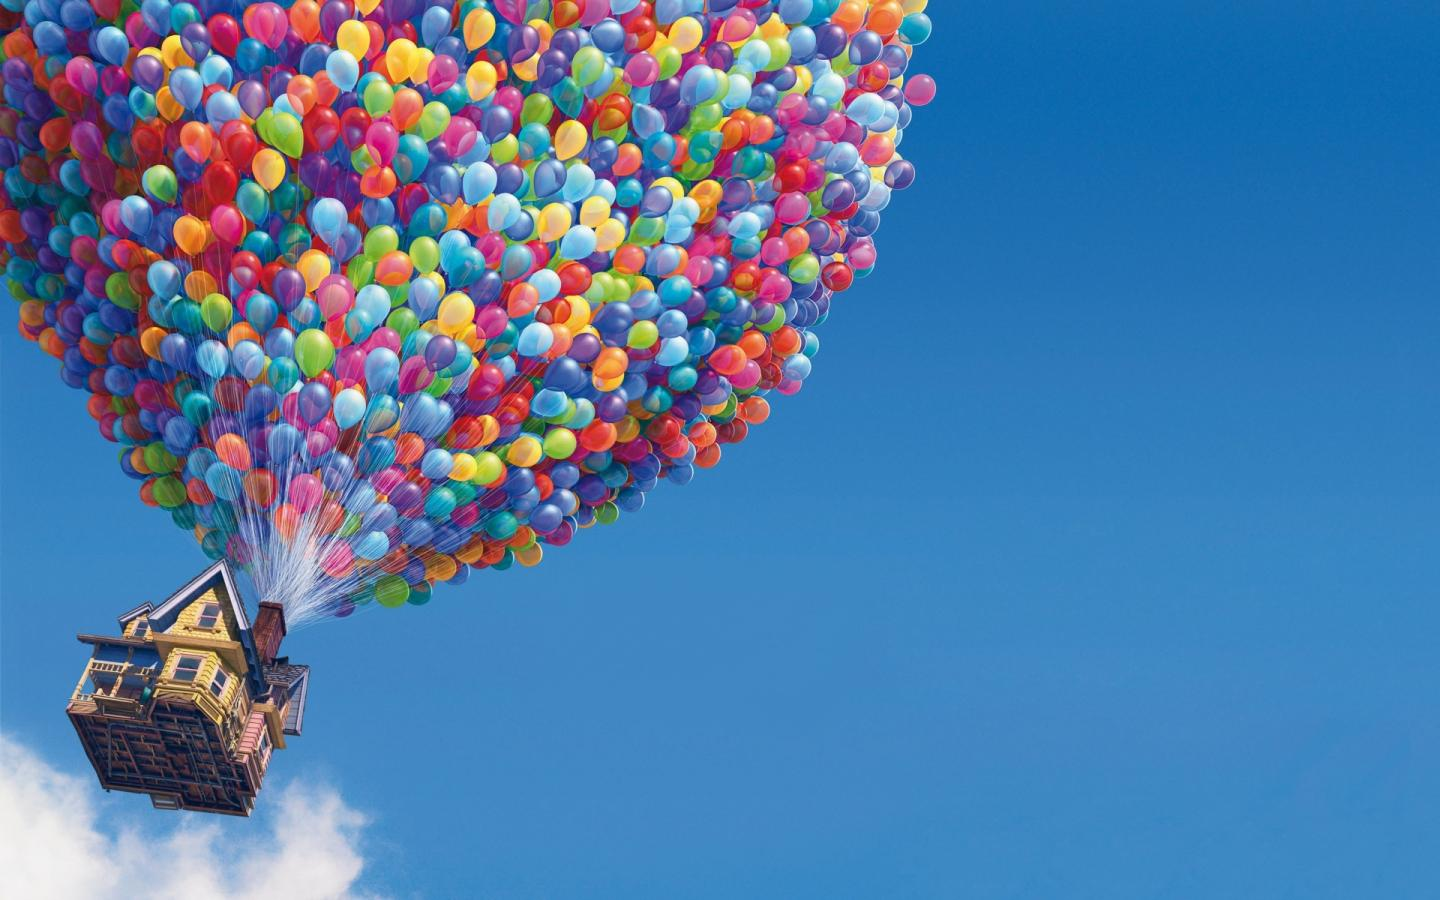 Movie Pixar Studios HD WallpapersHigh Resolution Backgrounds for your 1440x900